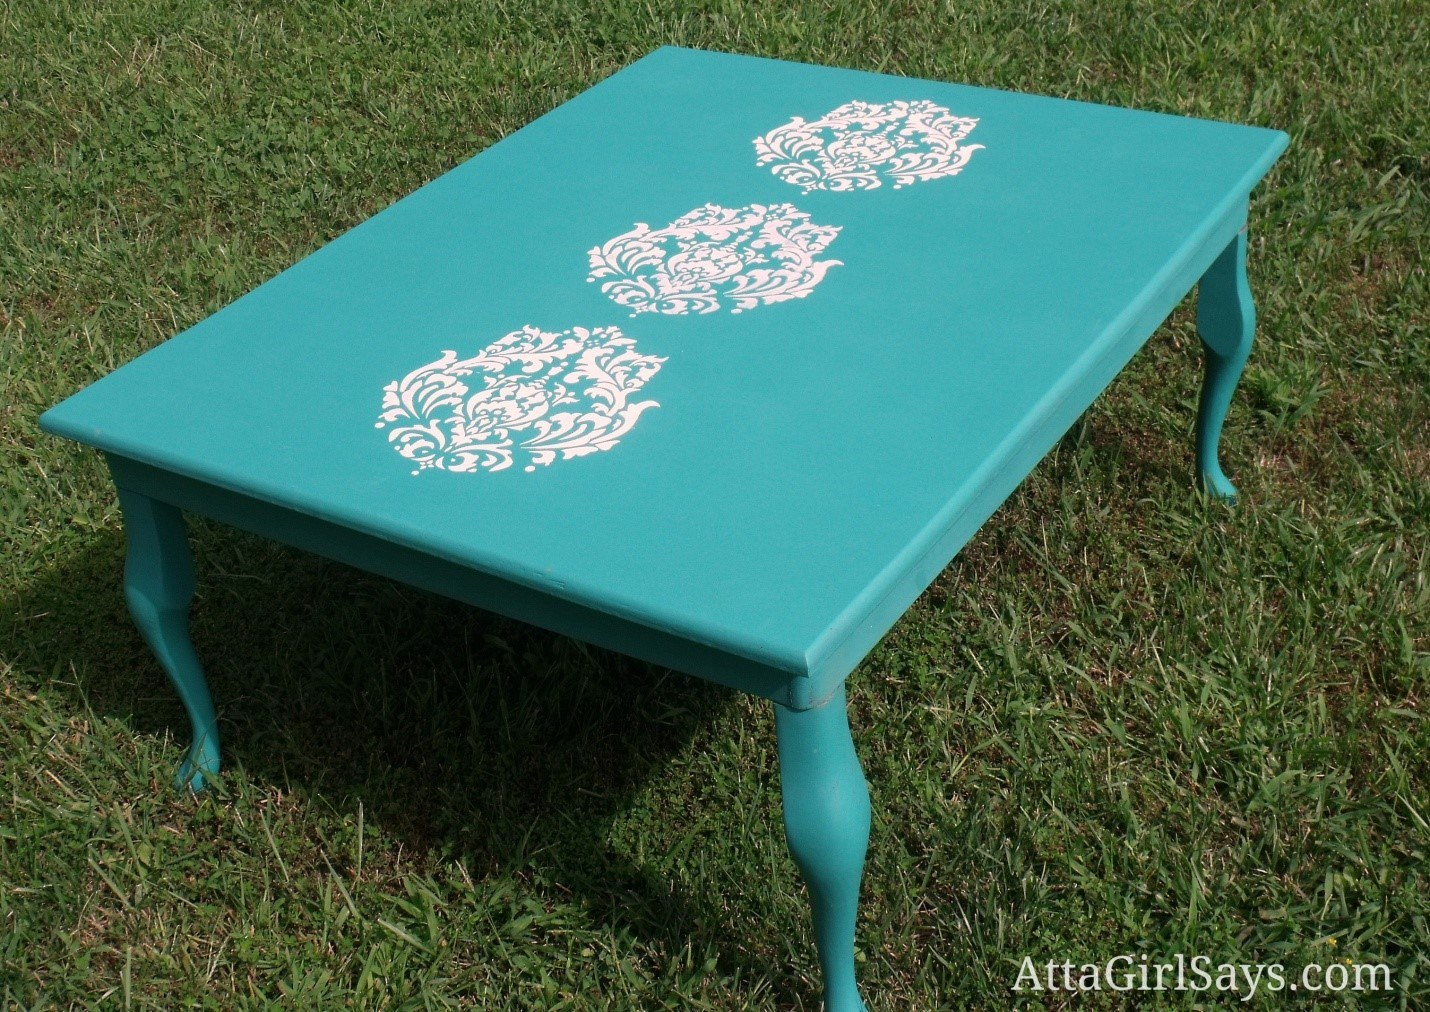 Stenciled coffee table via Atta Girl Says